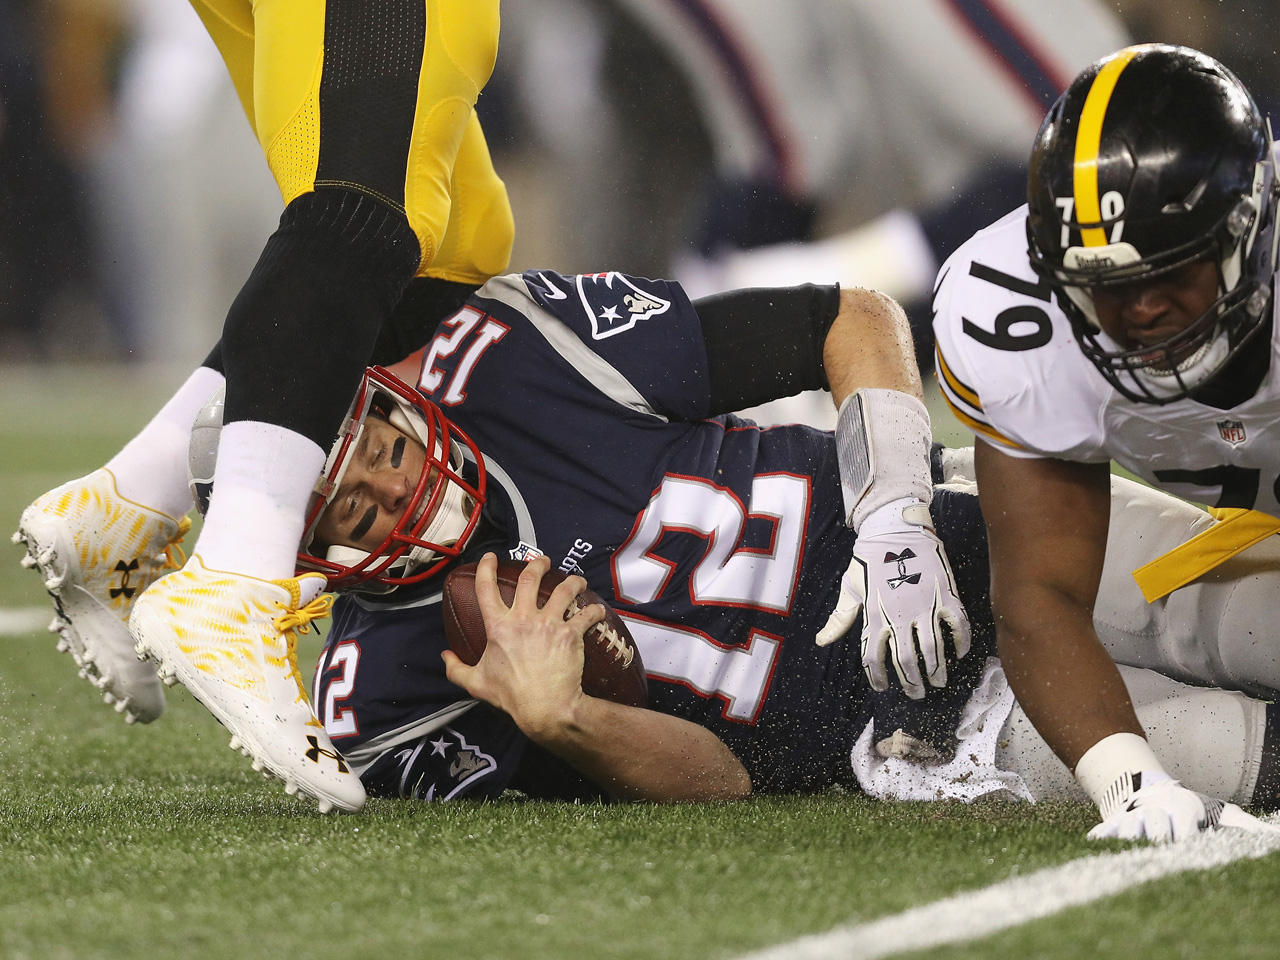 Tom Brady weighs in on concussion risks - CBS News